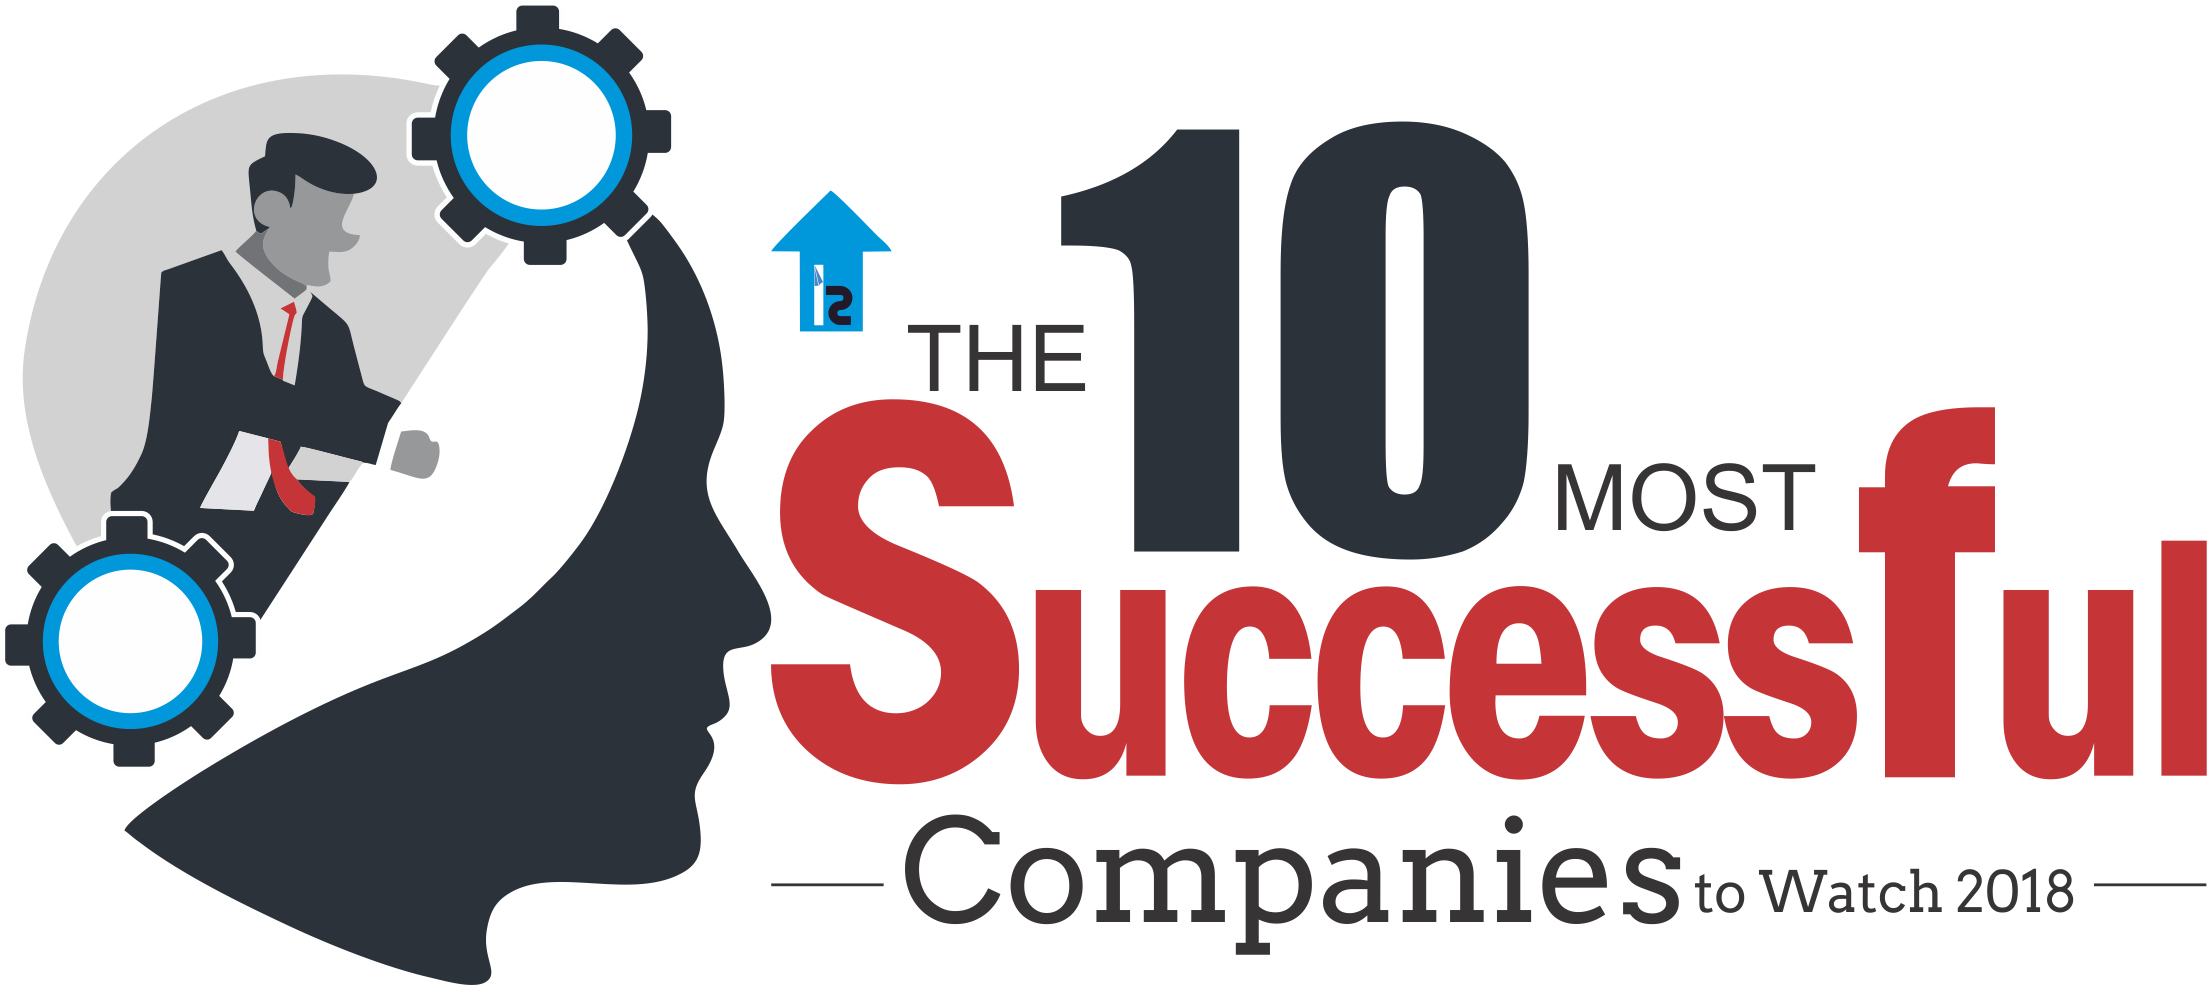 Allgress Selected as One of the 10 Most Successful Companies to Watch in  2018 by Insight Success Magazine